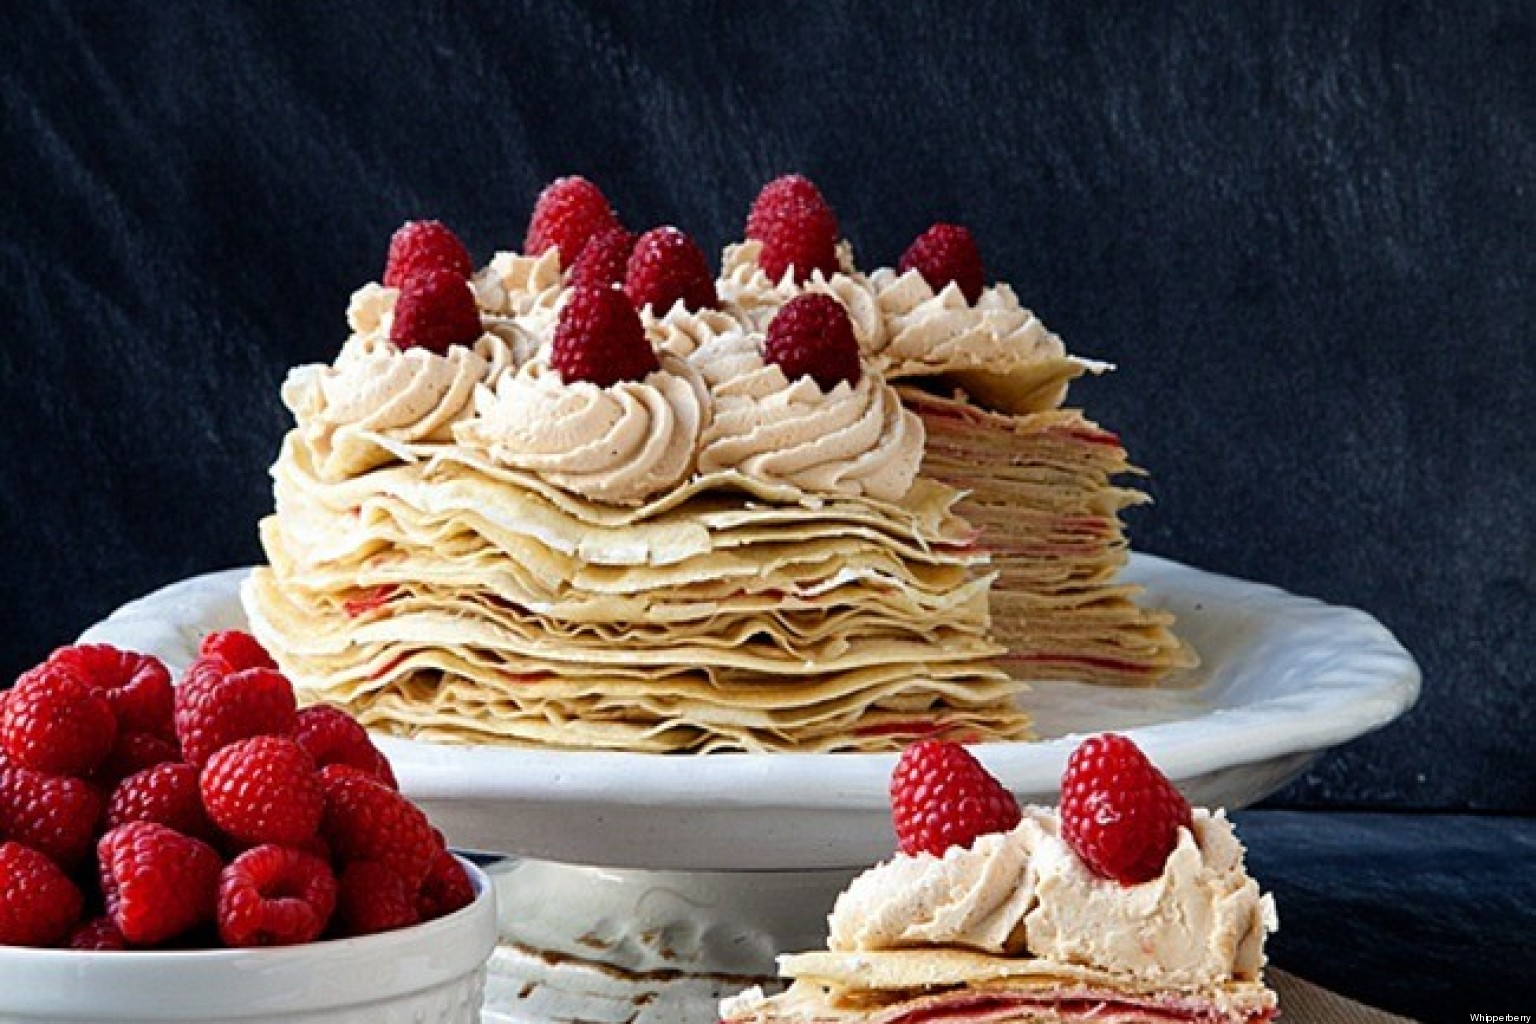 Layered Crepe Cake Recipes: If You Don't Know What Crepe Cake Is, Buckle Your